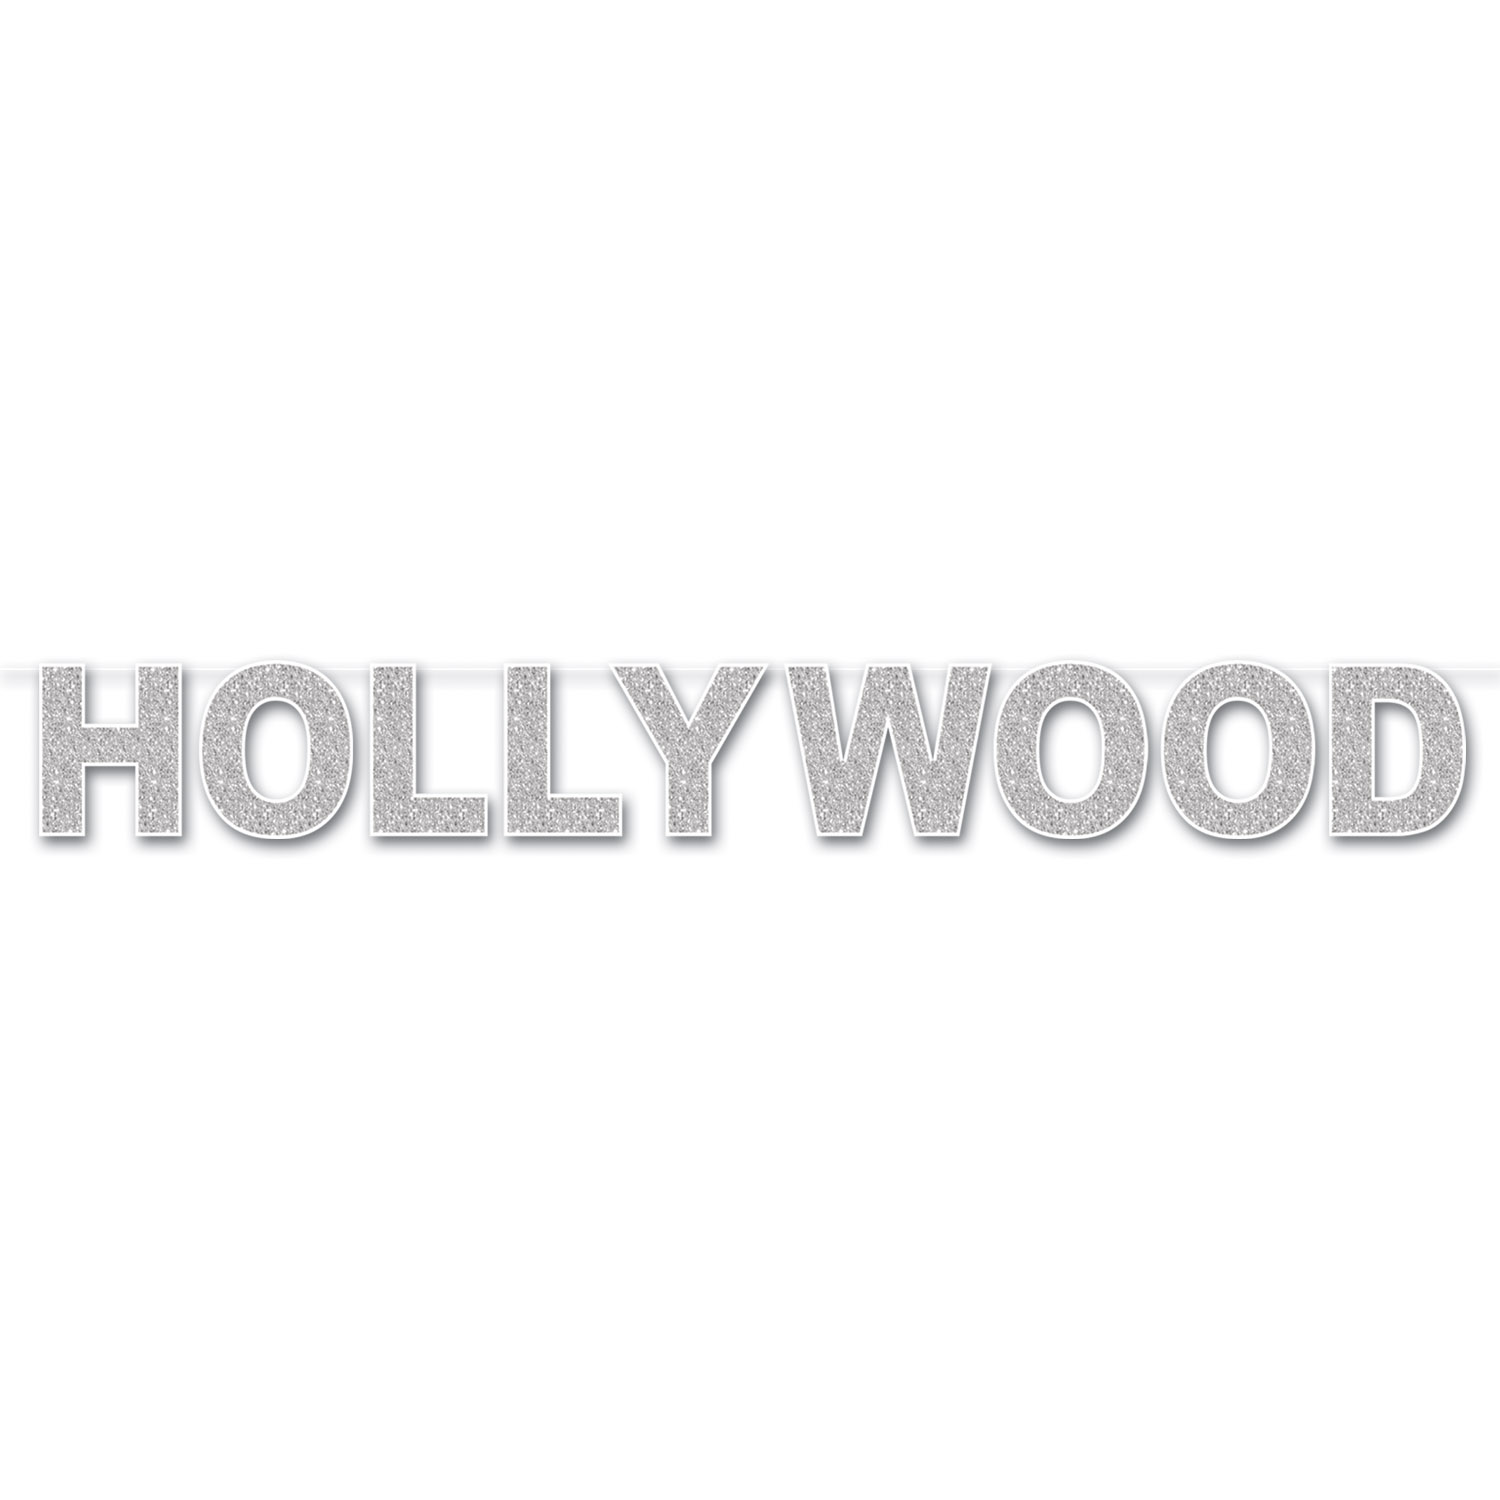 Glittered Hollywood Streamer (Pack of 12) glittered, Hollywood, streamer, silver, party, theme, awards, night, hanging, decoration